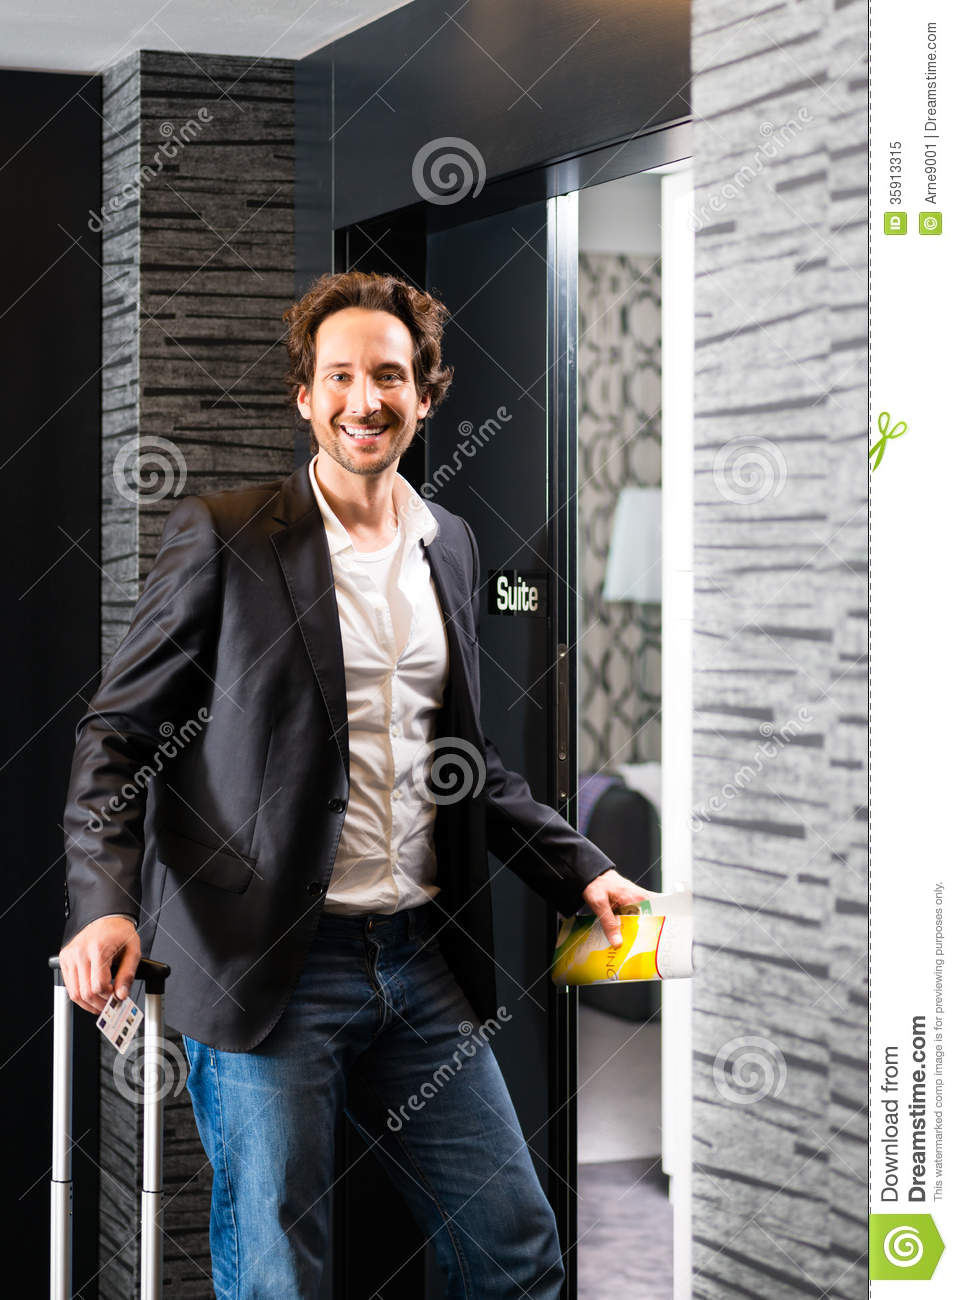 Inside Hotel Room Door: Young Guest With Luggage Entering Hotel Room Stock Image